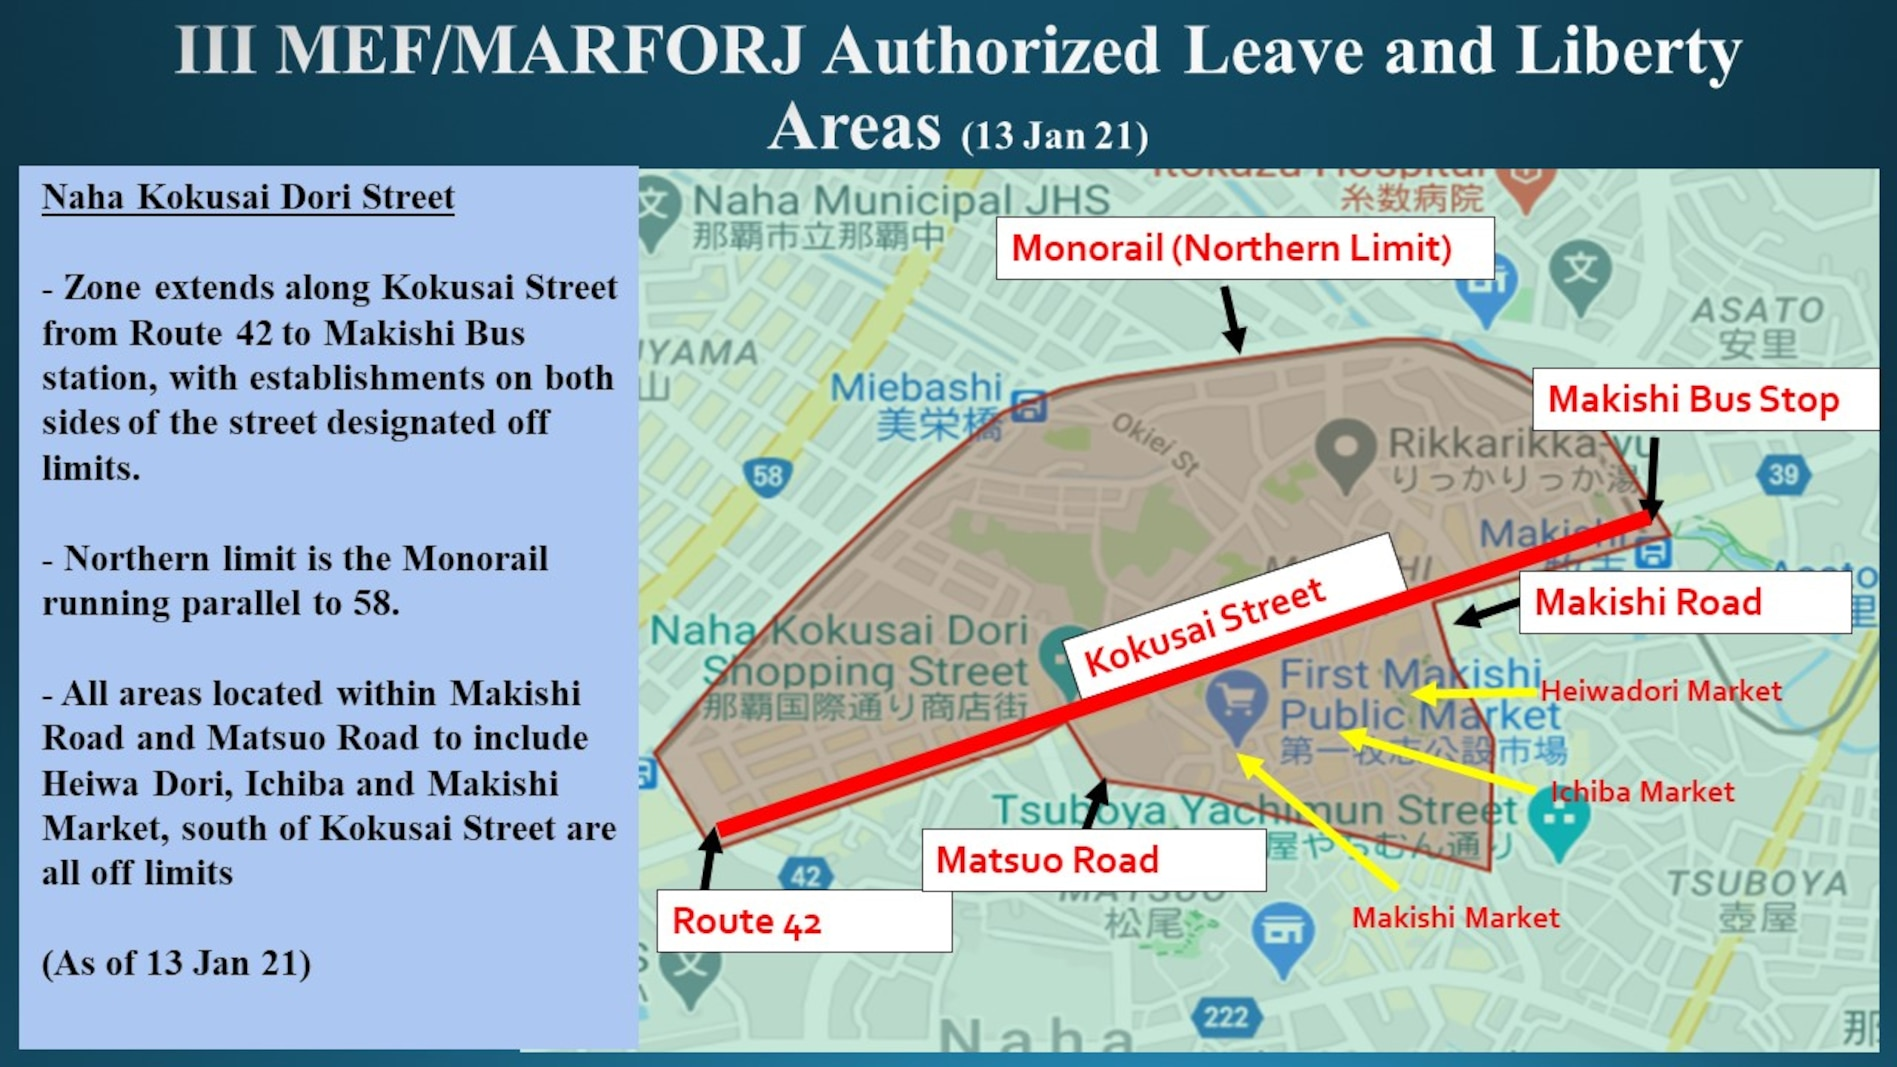 III MEF/MARFORJ Authorized Leave and Liberty Areas (13 January 21)